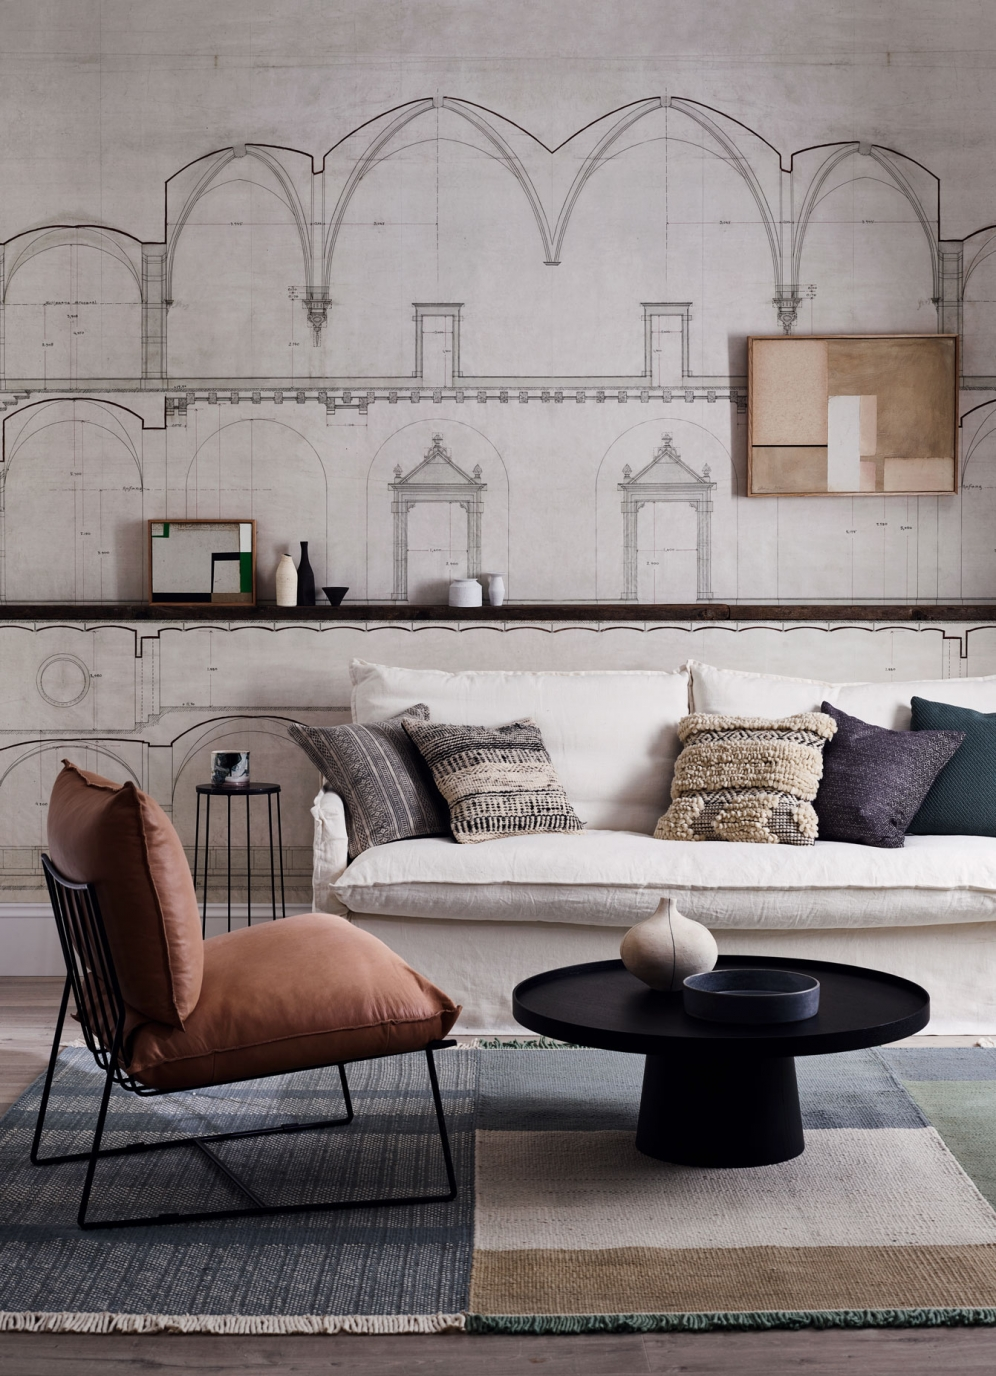 Homes & Gardens | The Look